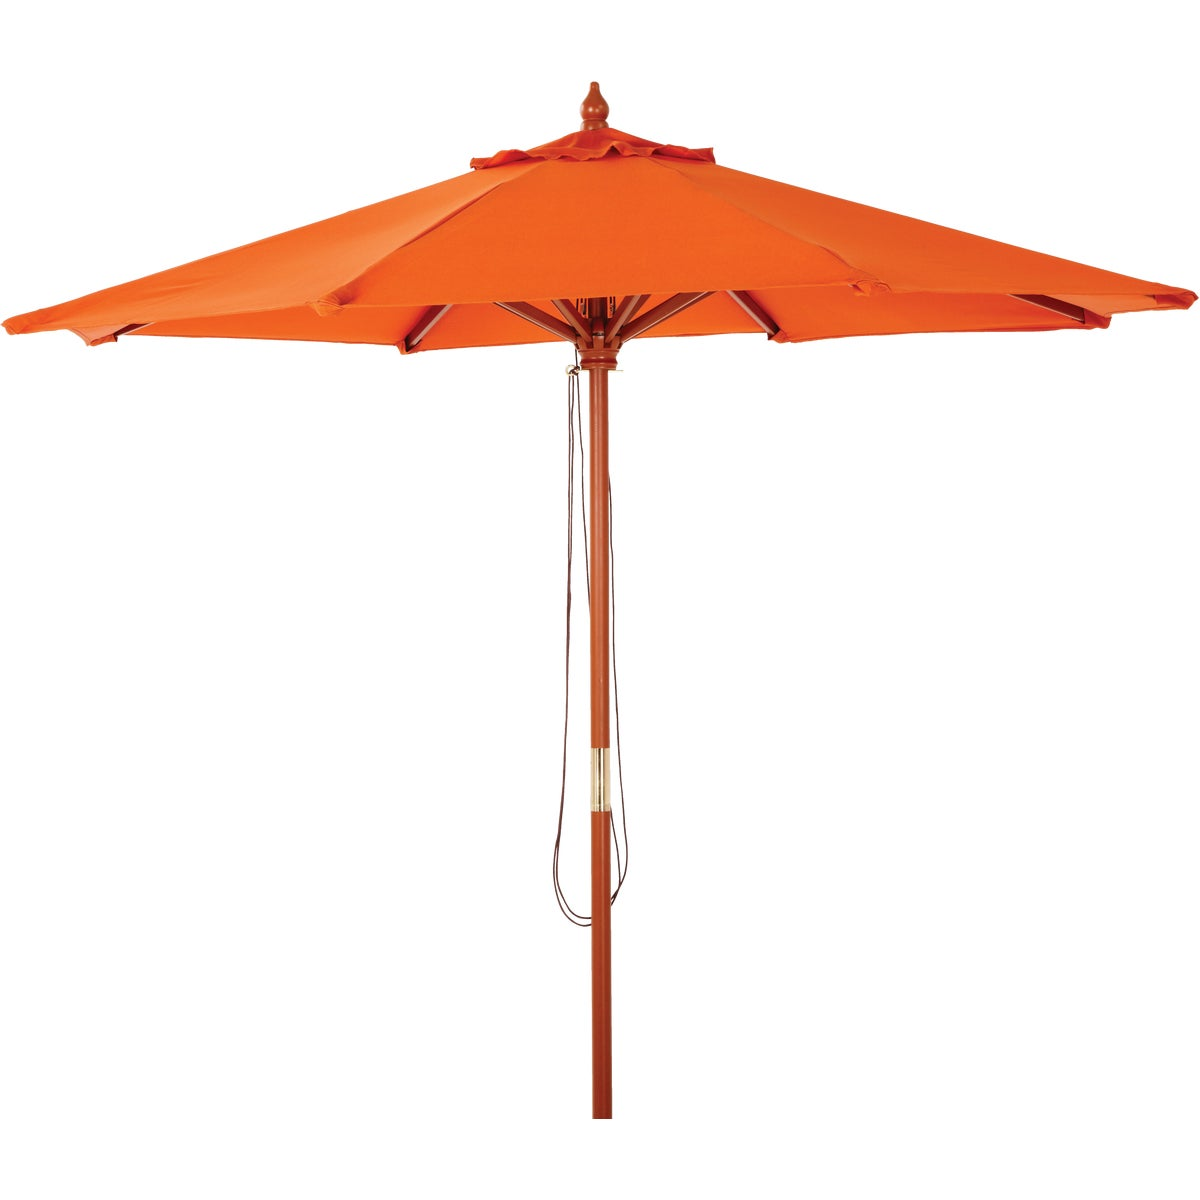 7.5' MKT SPICE UMBRELLA - TJWU-003A-230-ORG by Do it Best